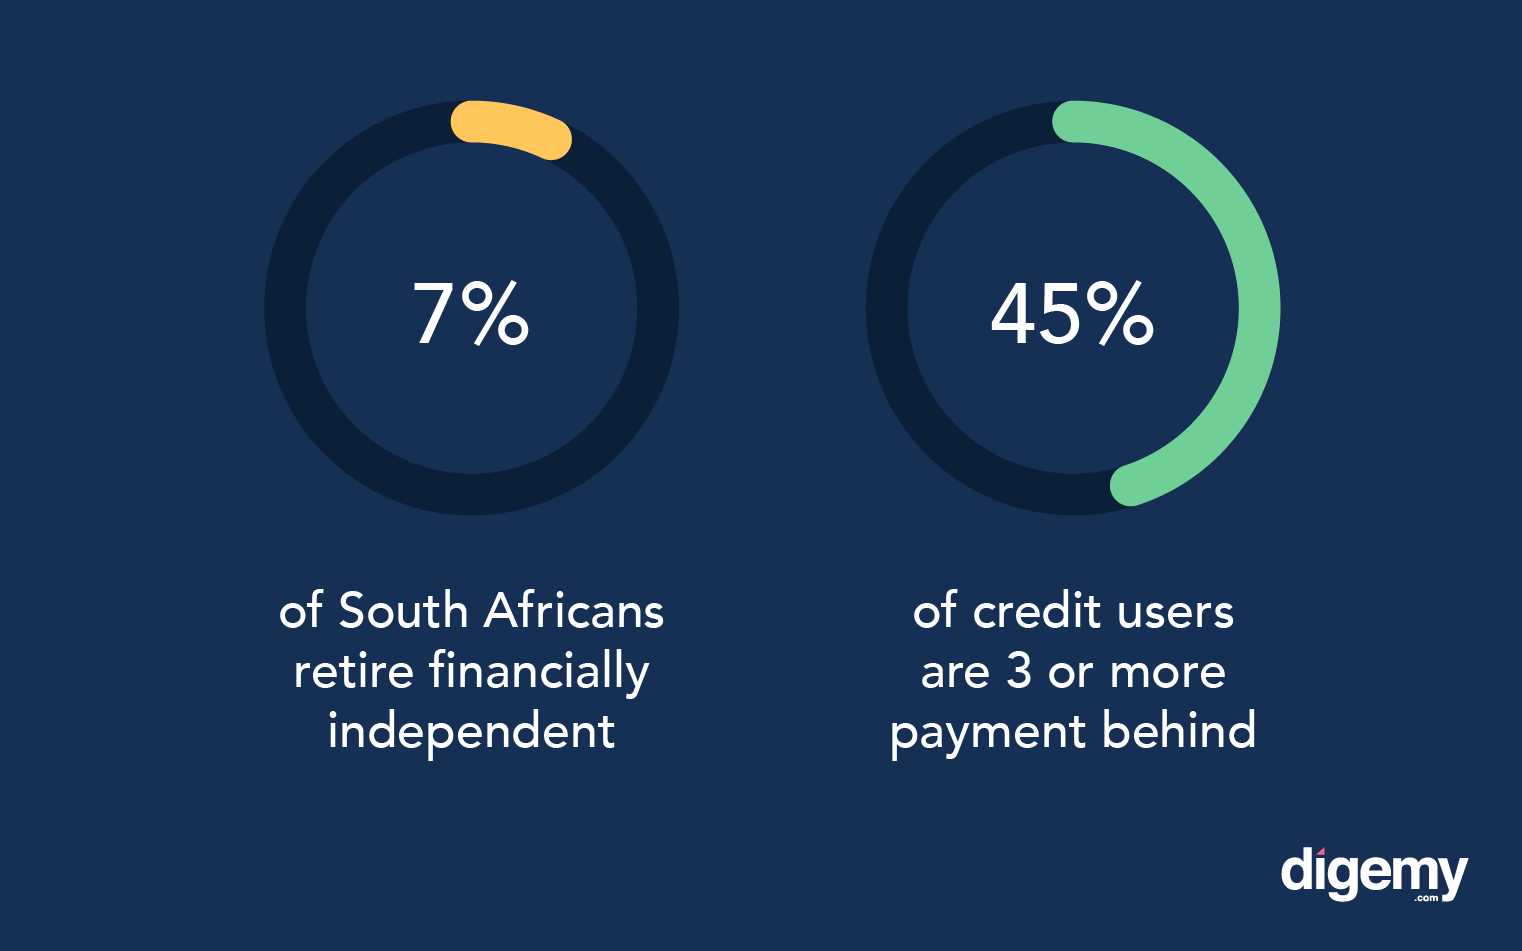 Figures showing the financial literacy across South Africa